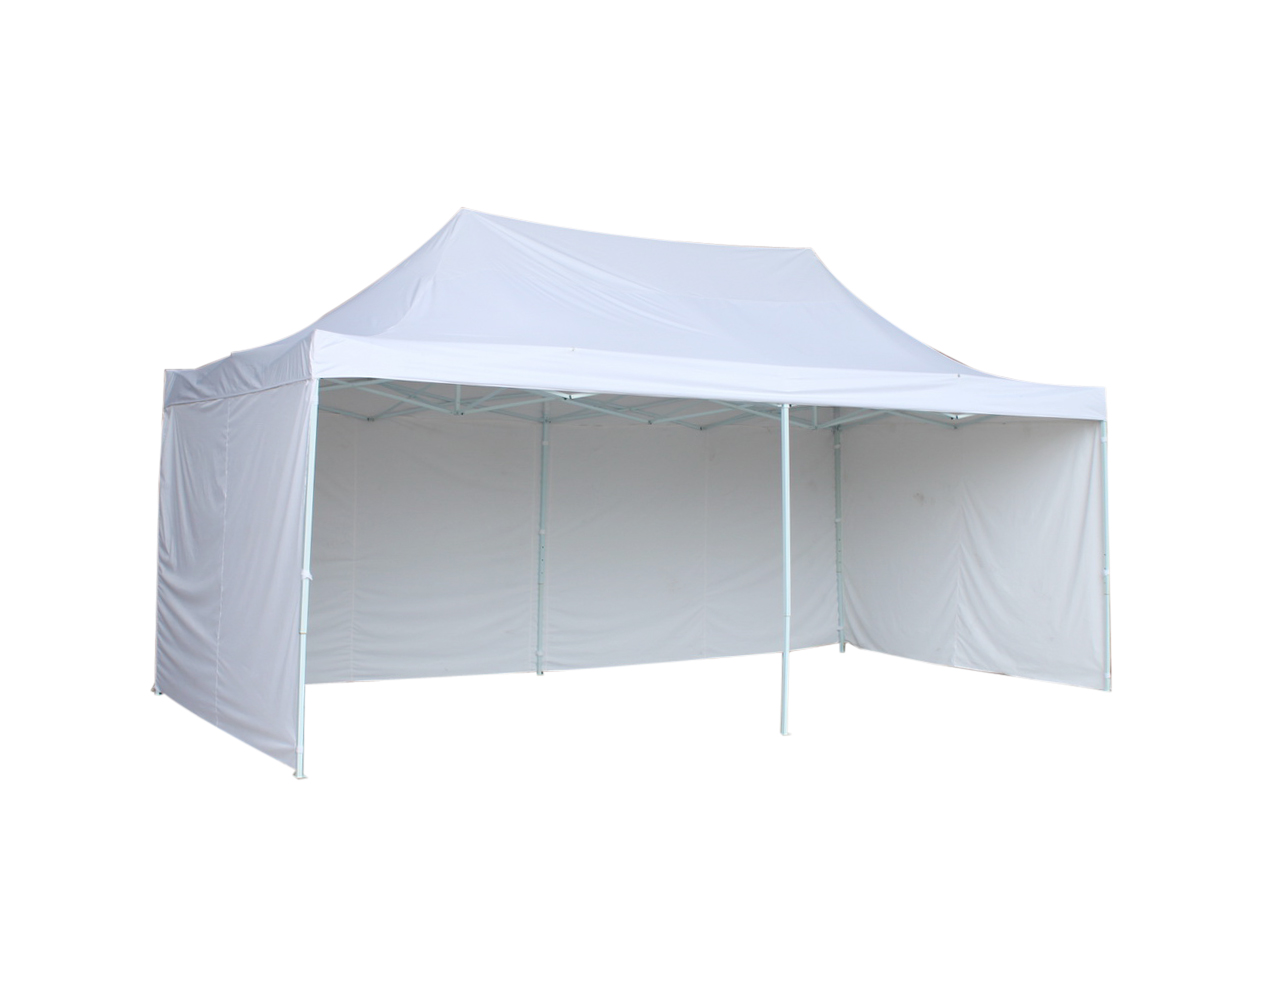 3x6m Popup Gazebo Party Tent Marquee